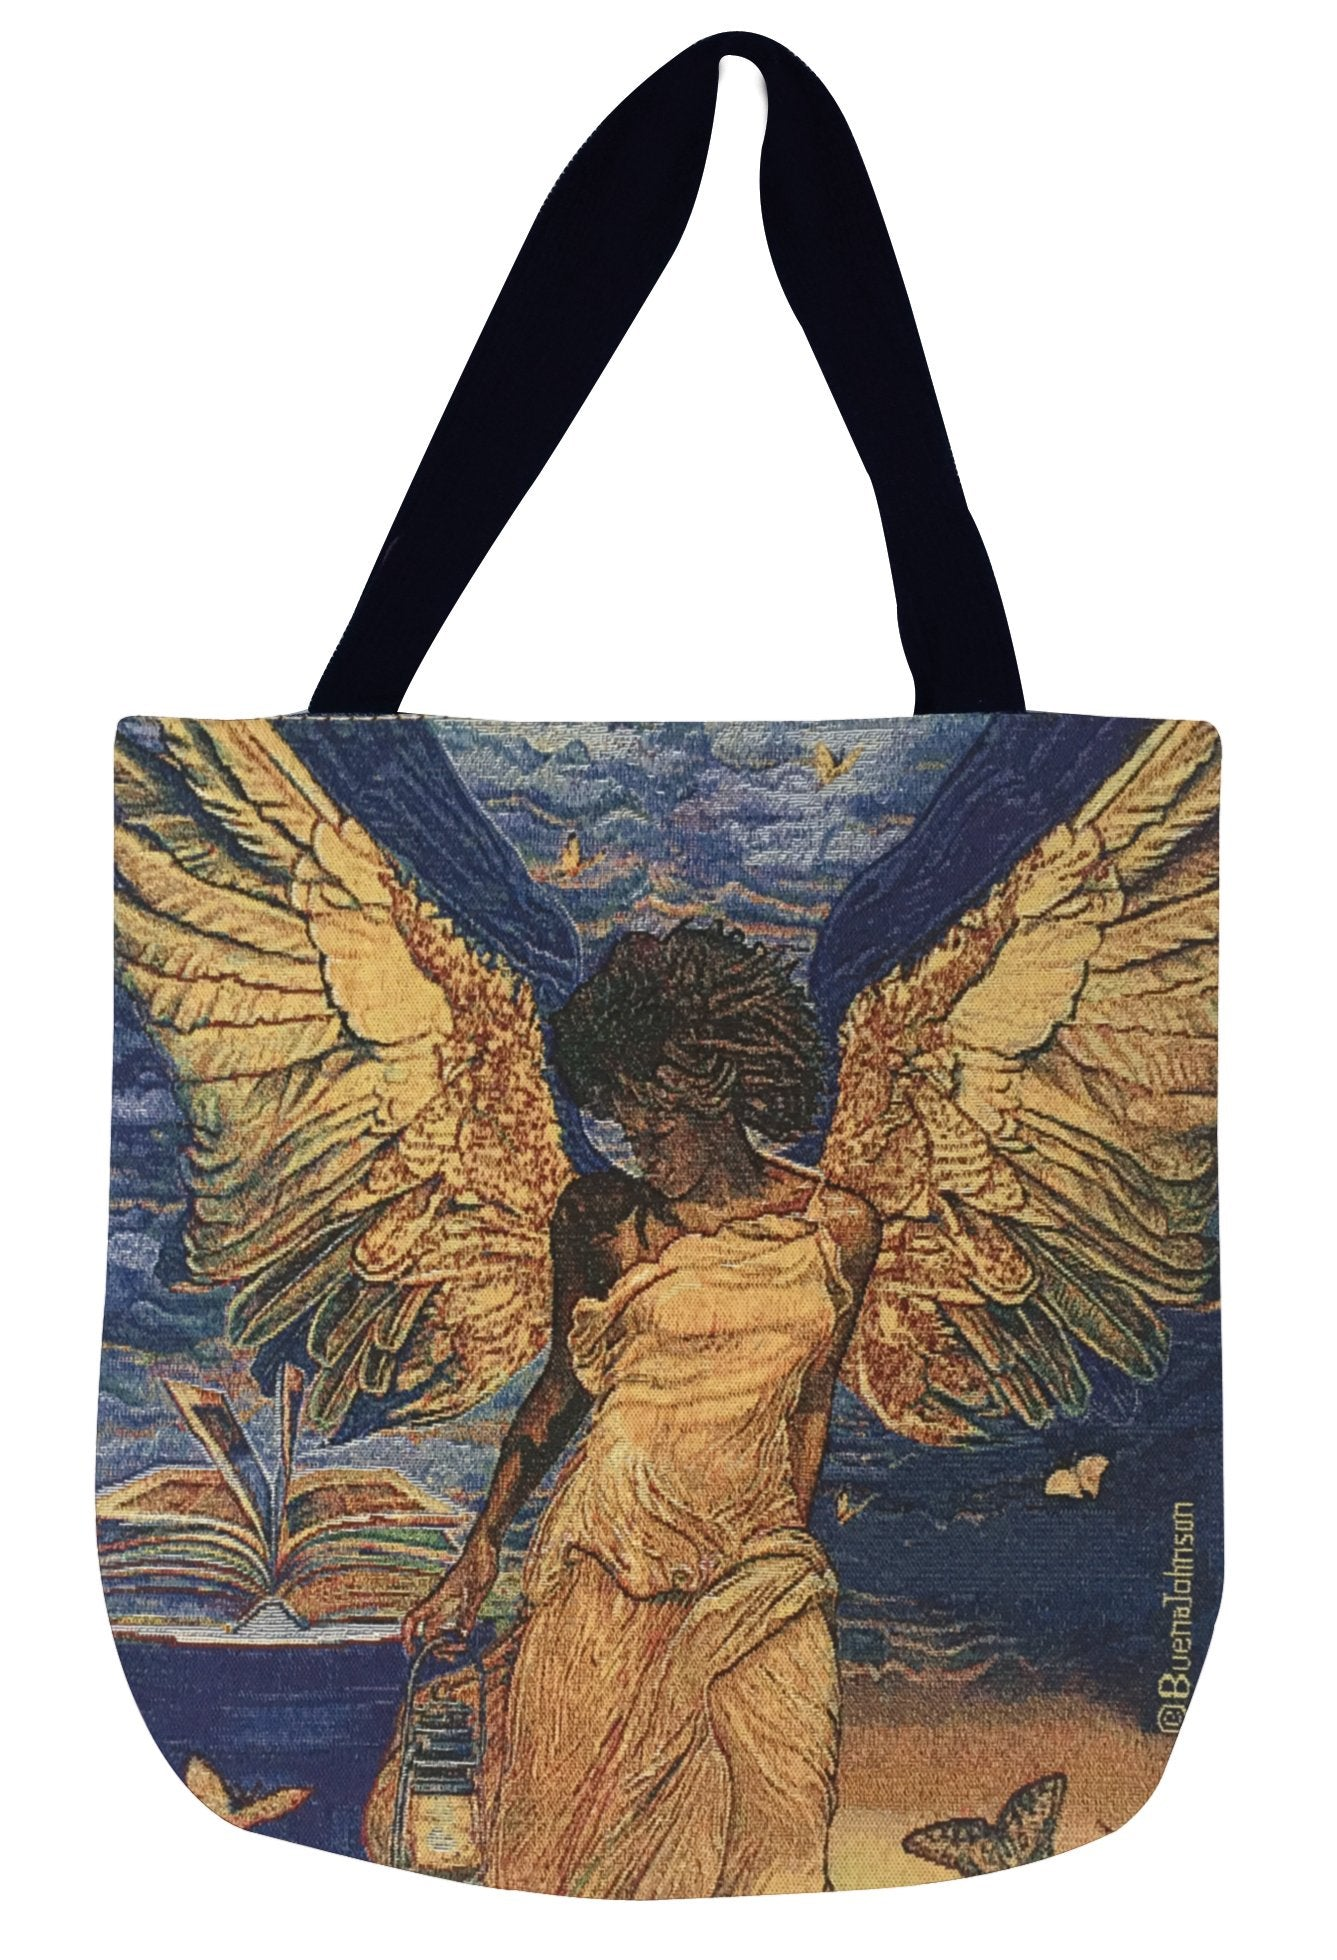 Angelic Guidance: African American Woven Tapestry Tote Bag by Buena Johnson